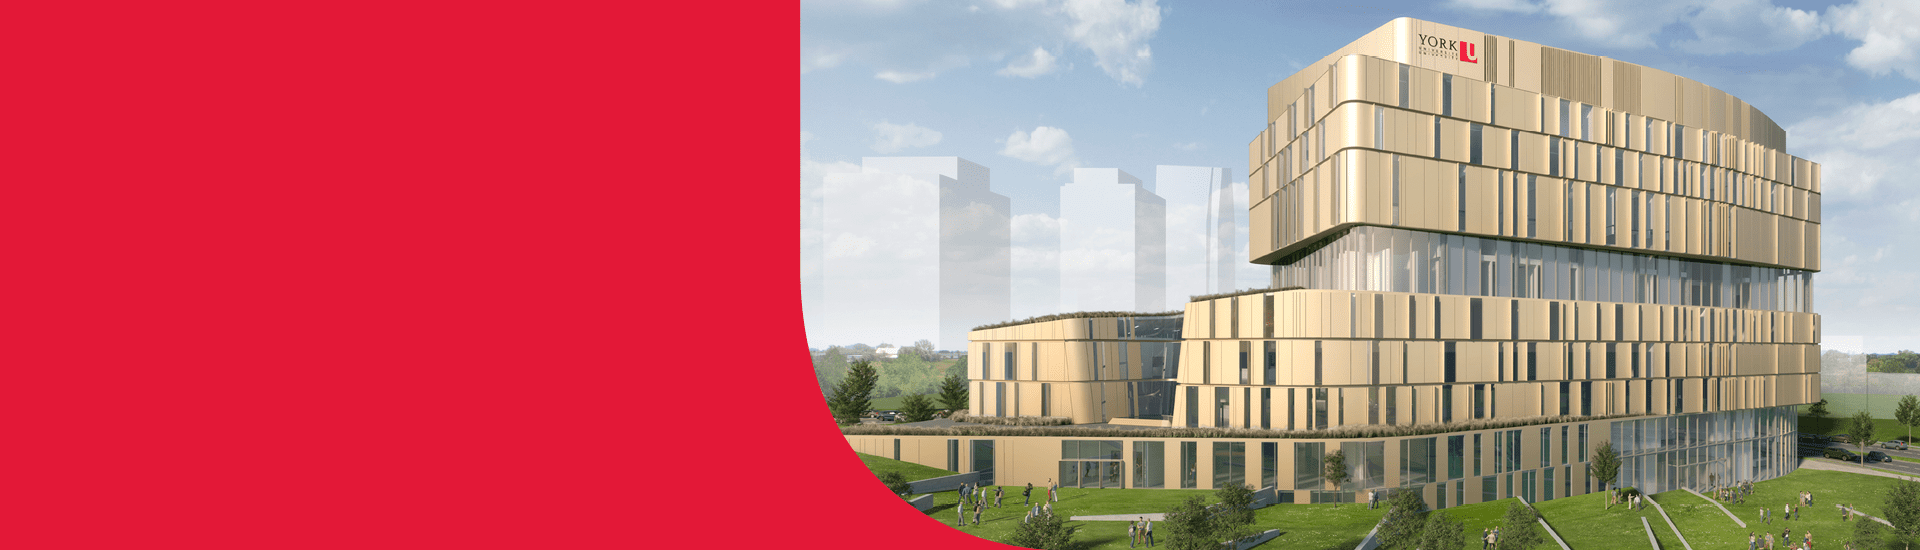 York University's Board of Governors has approved the preliminary design and budget for the York University Markham Centre Campus